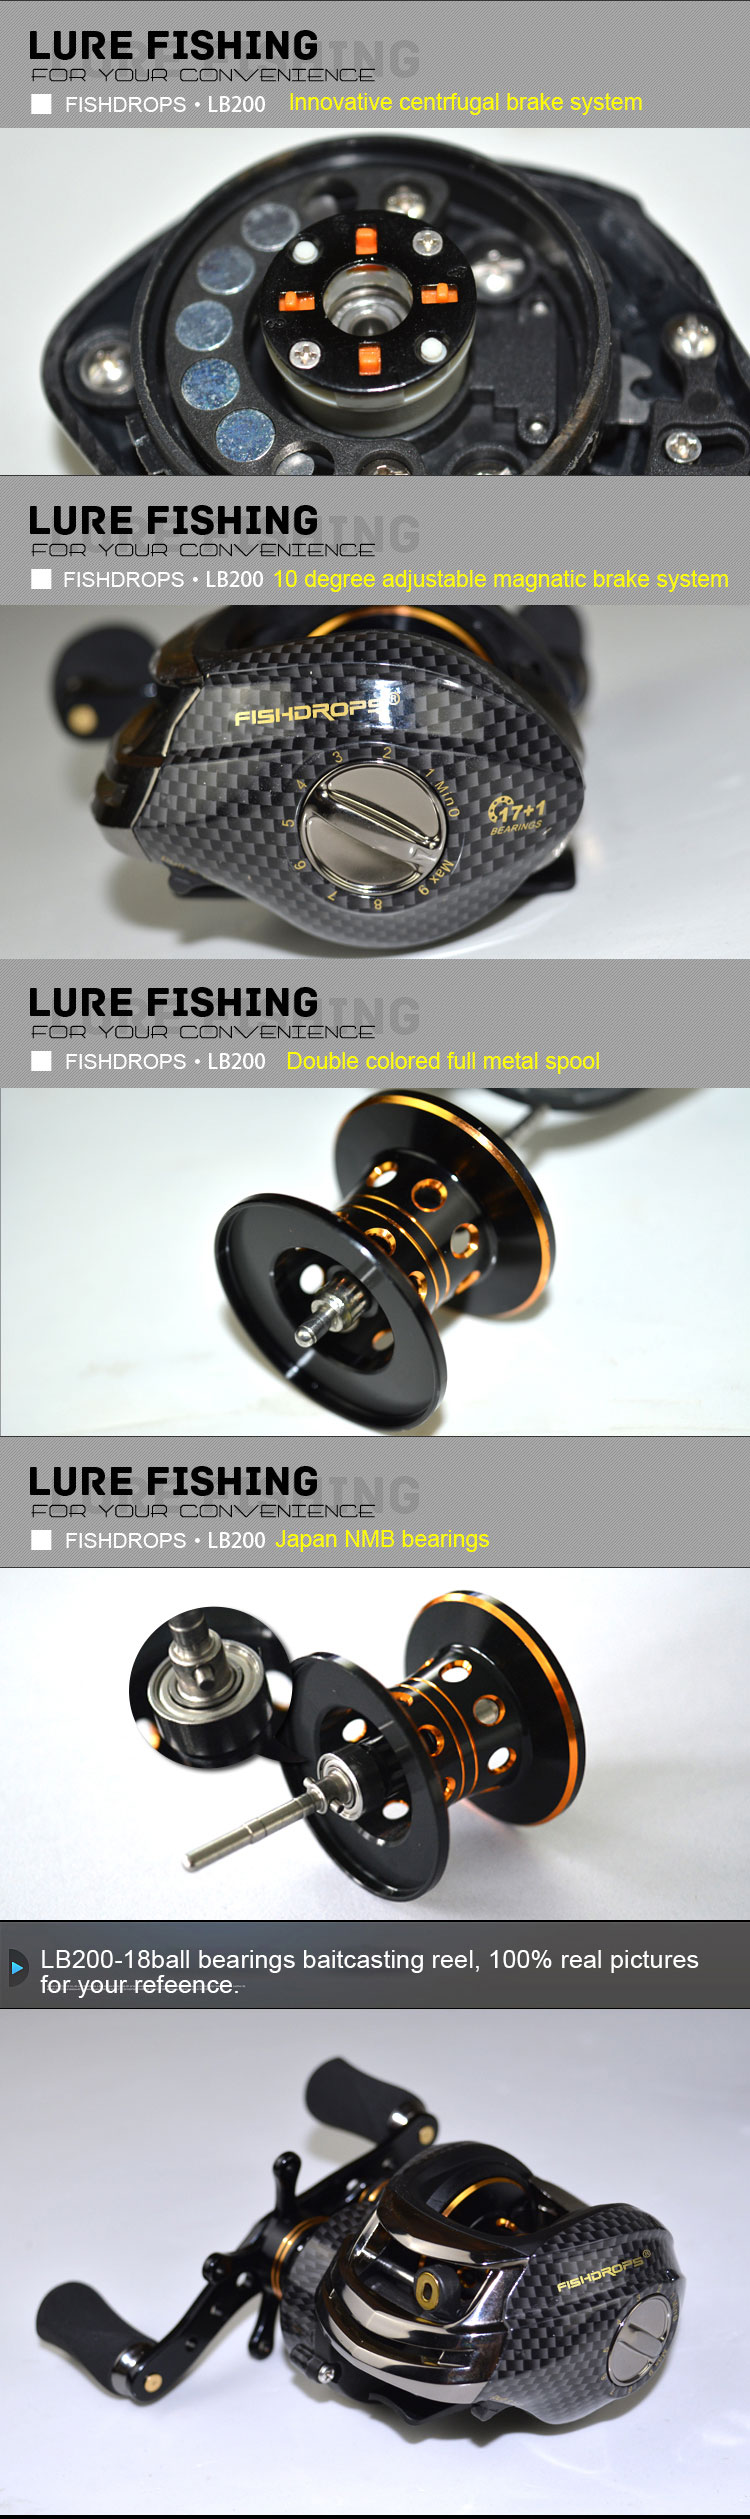 Week's Wheel Baitcasting Reel 5